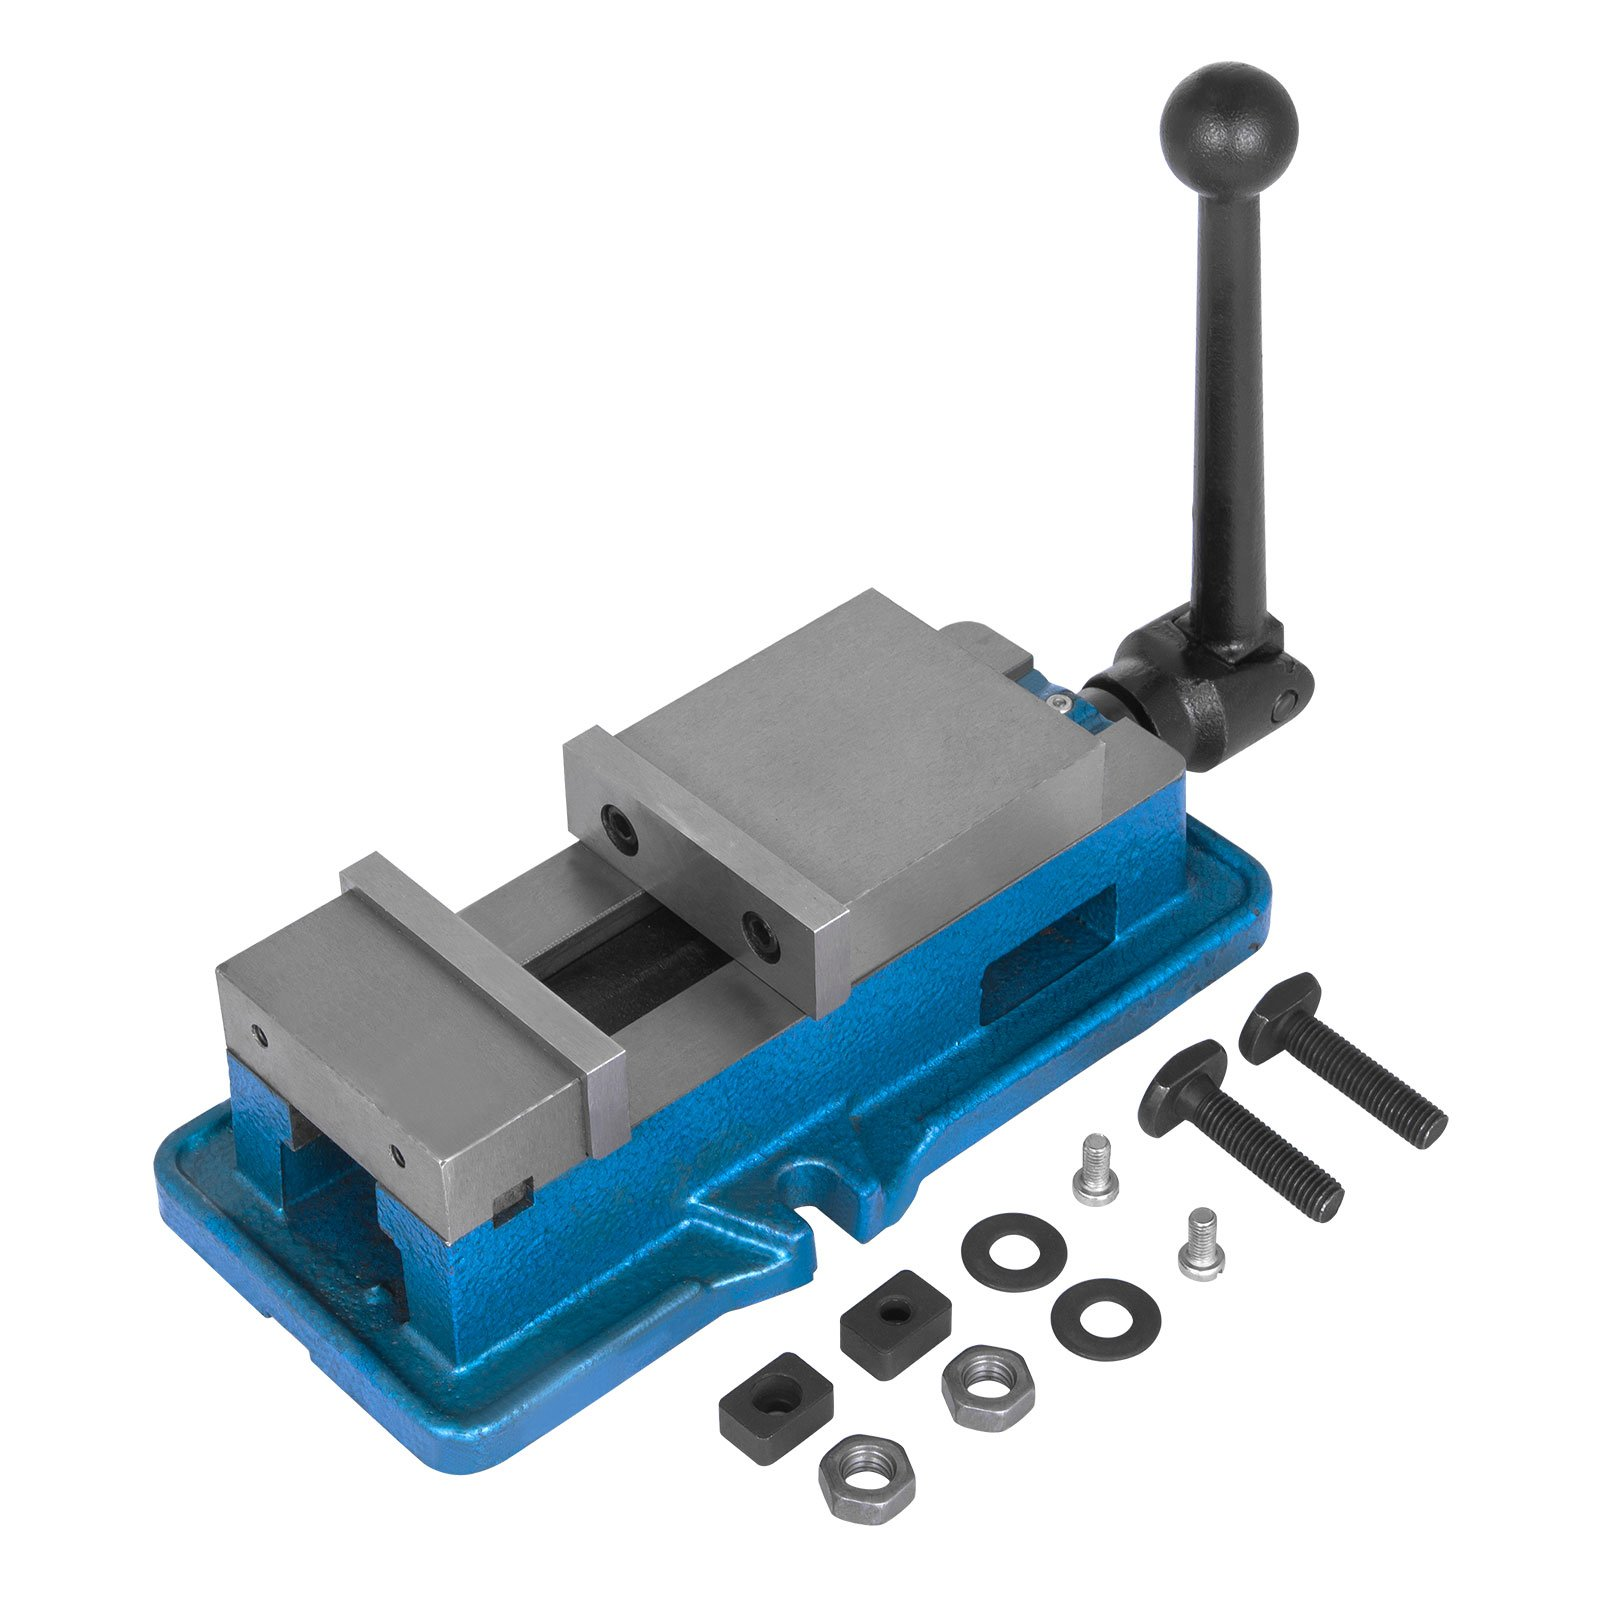 OrangeA Bench Clamp Vise High Precision Clamping Vise 3 Inch Jaw Width Accu-lock Vise Hardened Metal Milling Machine